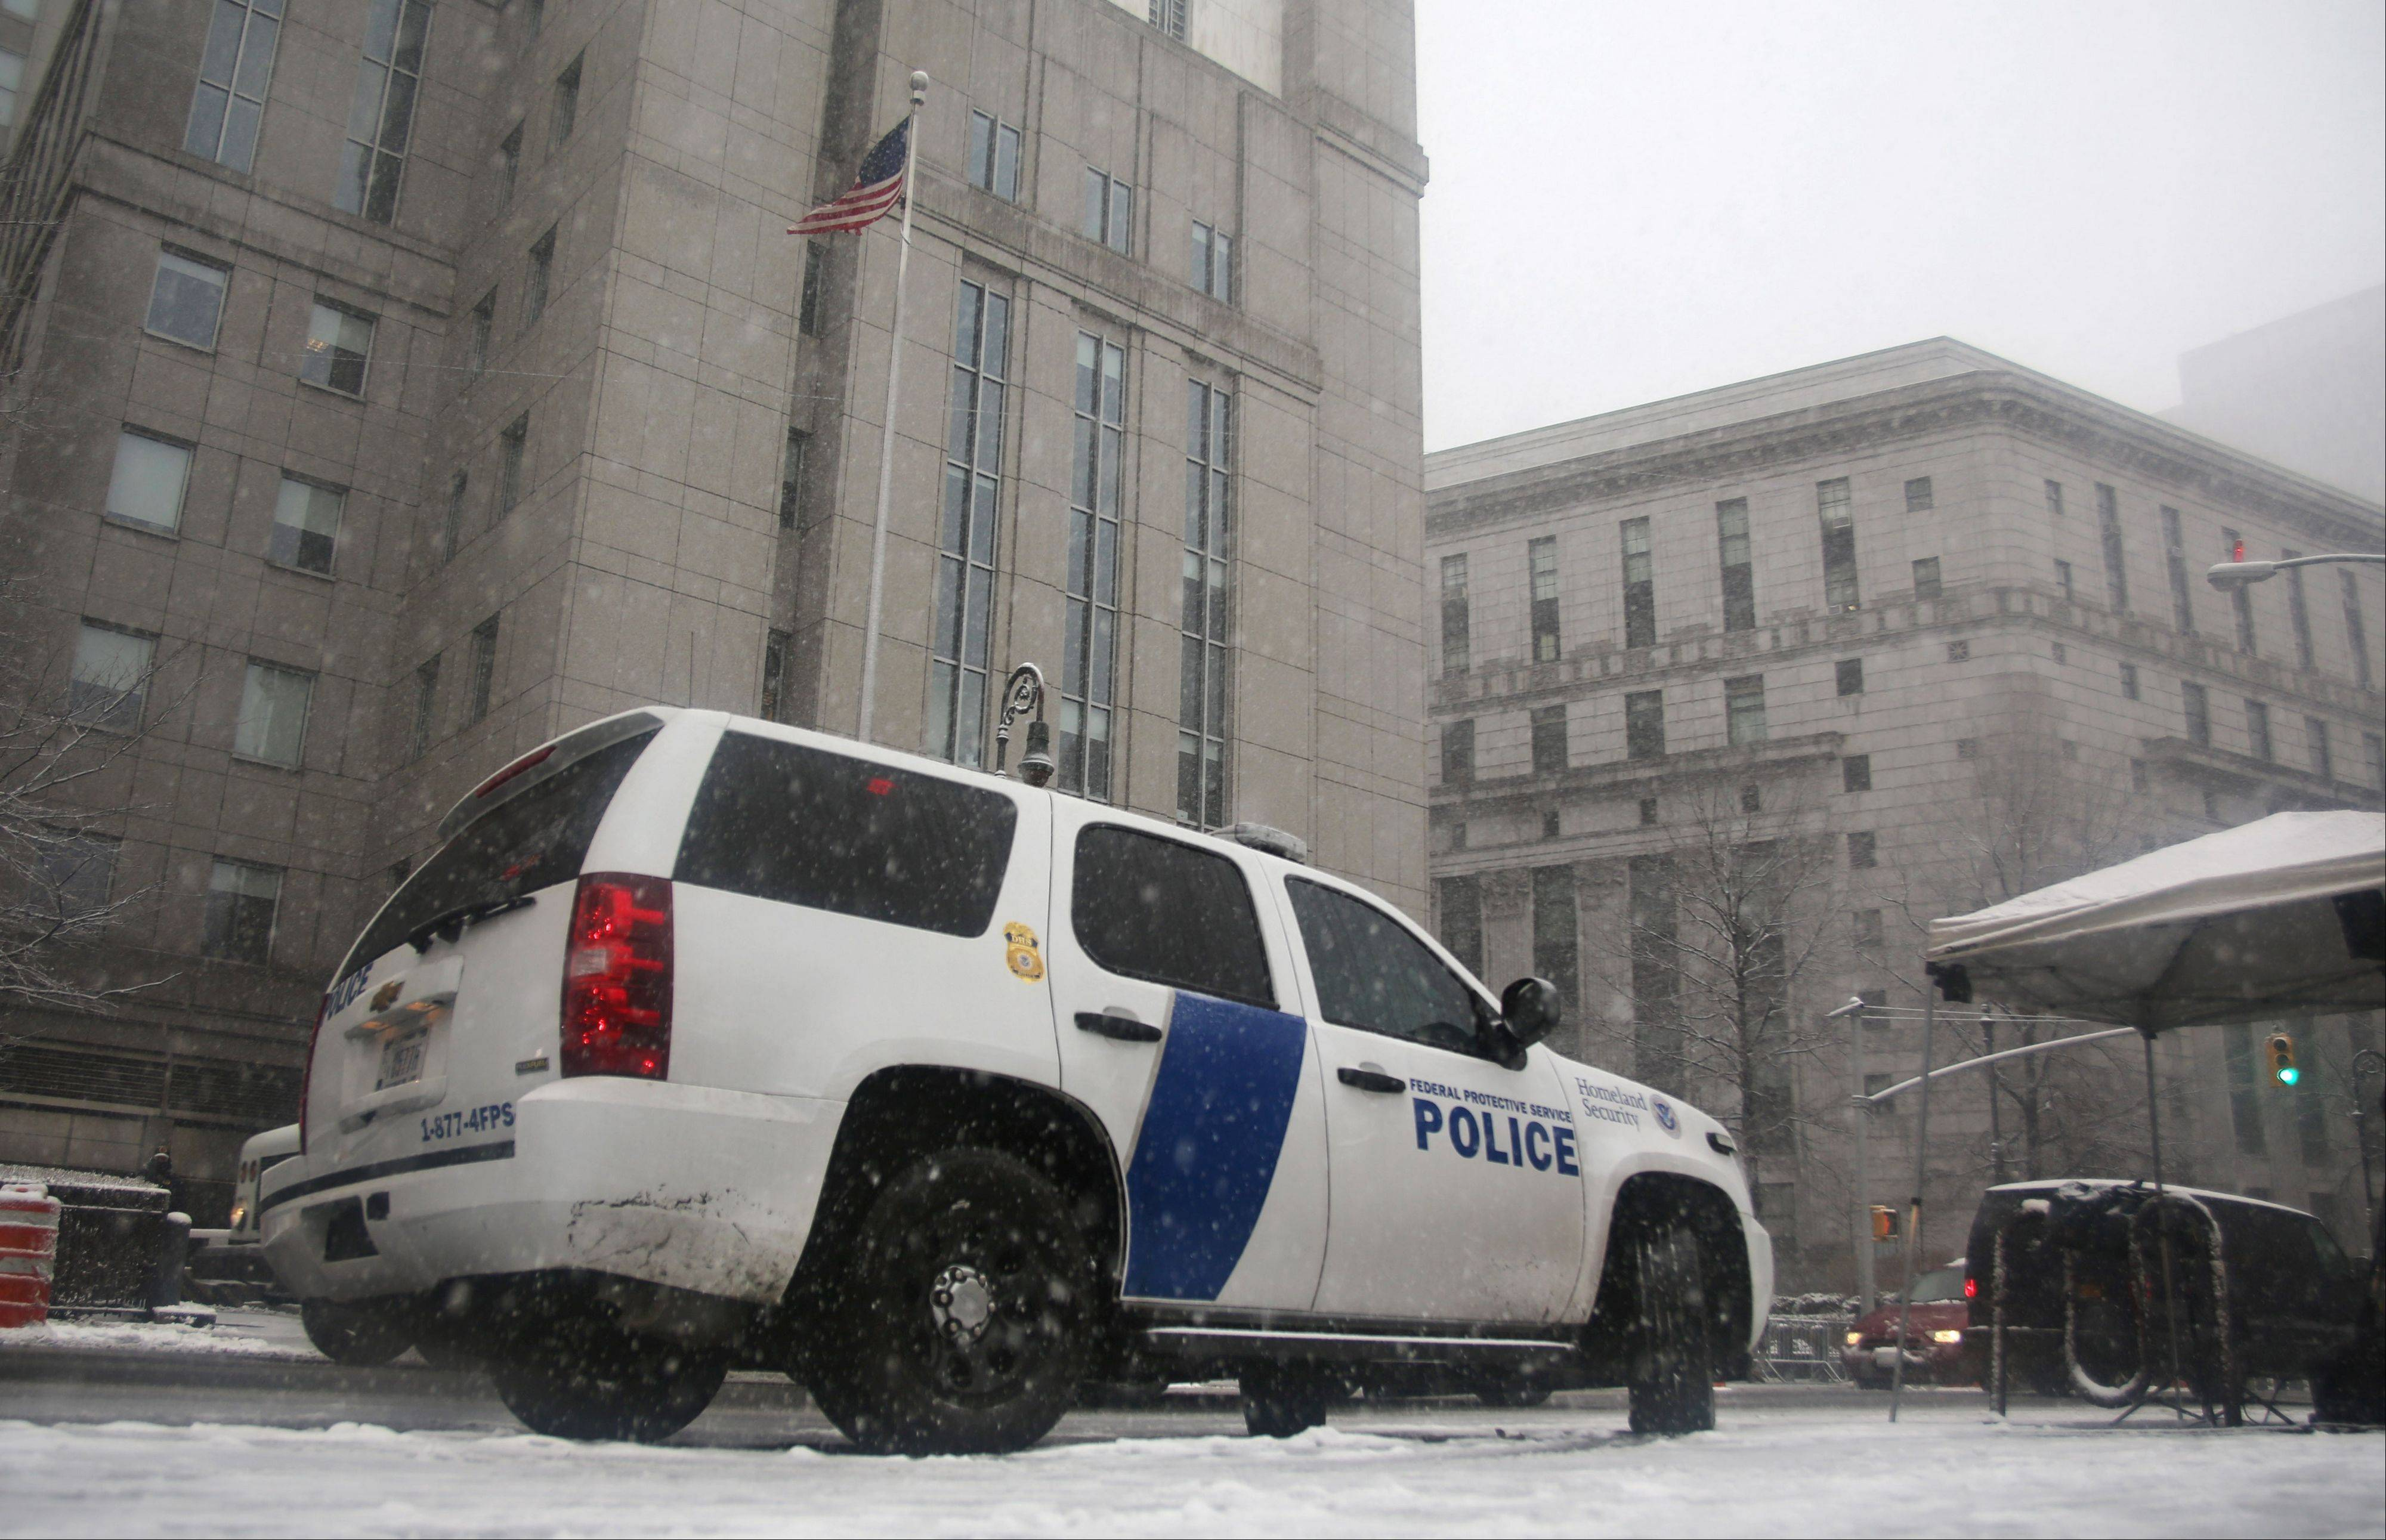 A Homeland Security vehicle sits in front of a federal court in New York on March 8, 2013, where Sulaiman Abu Ghaithwhere, a senior al-Qaida leader and son-in-law of Osama bin Laden, pleaded not guilty to plotting against Americans in his role as the terror network's top spokesman. The case marks a legal victory for the Obama administration, which has long sought to charge senior al-Qaida suspects in U.S. federal courts instead of holding them at the military detention center at Guantanamo Bay, Cuba.